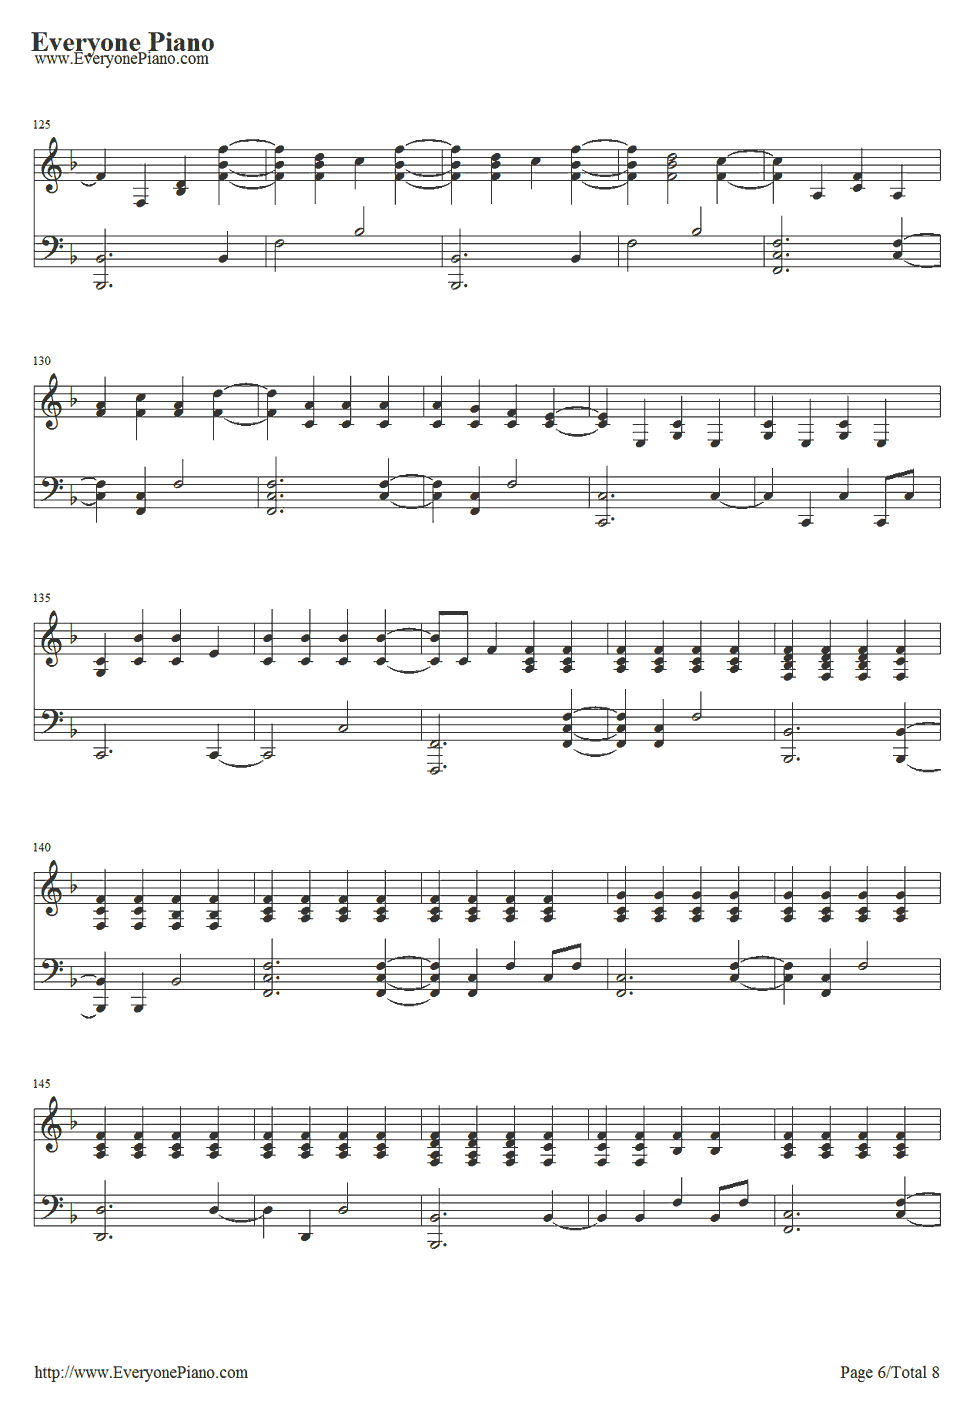 Coldplay the scientist piano sheet music learn to play today the coldplay the scientist piano sheet music learn to play today the scientist coldplay stave preview baditri Gallery